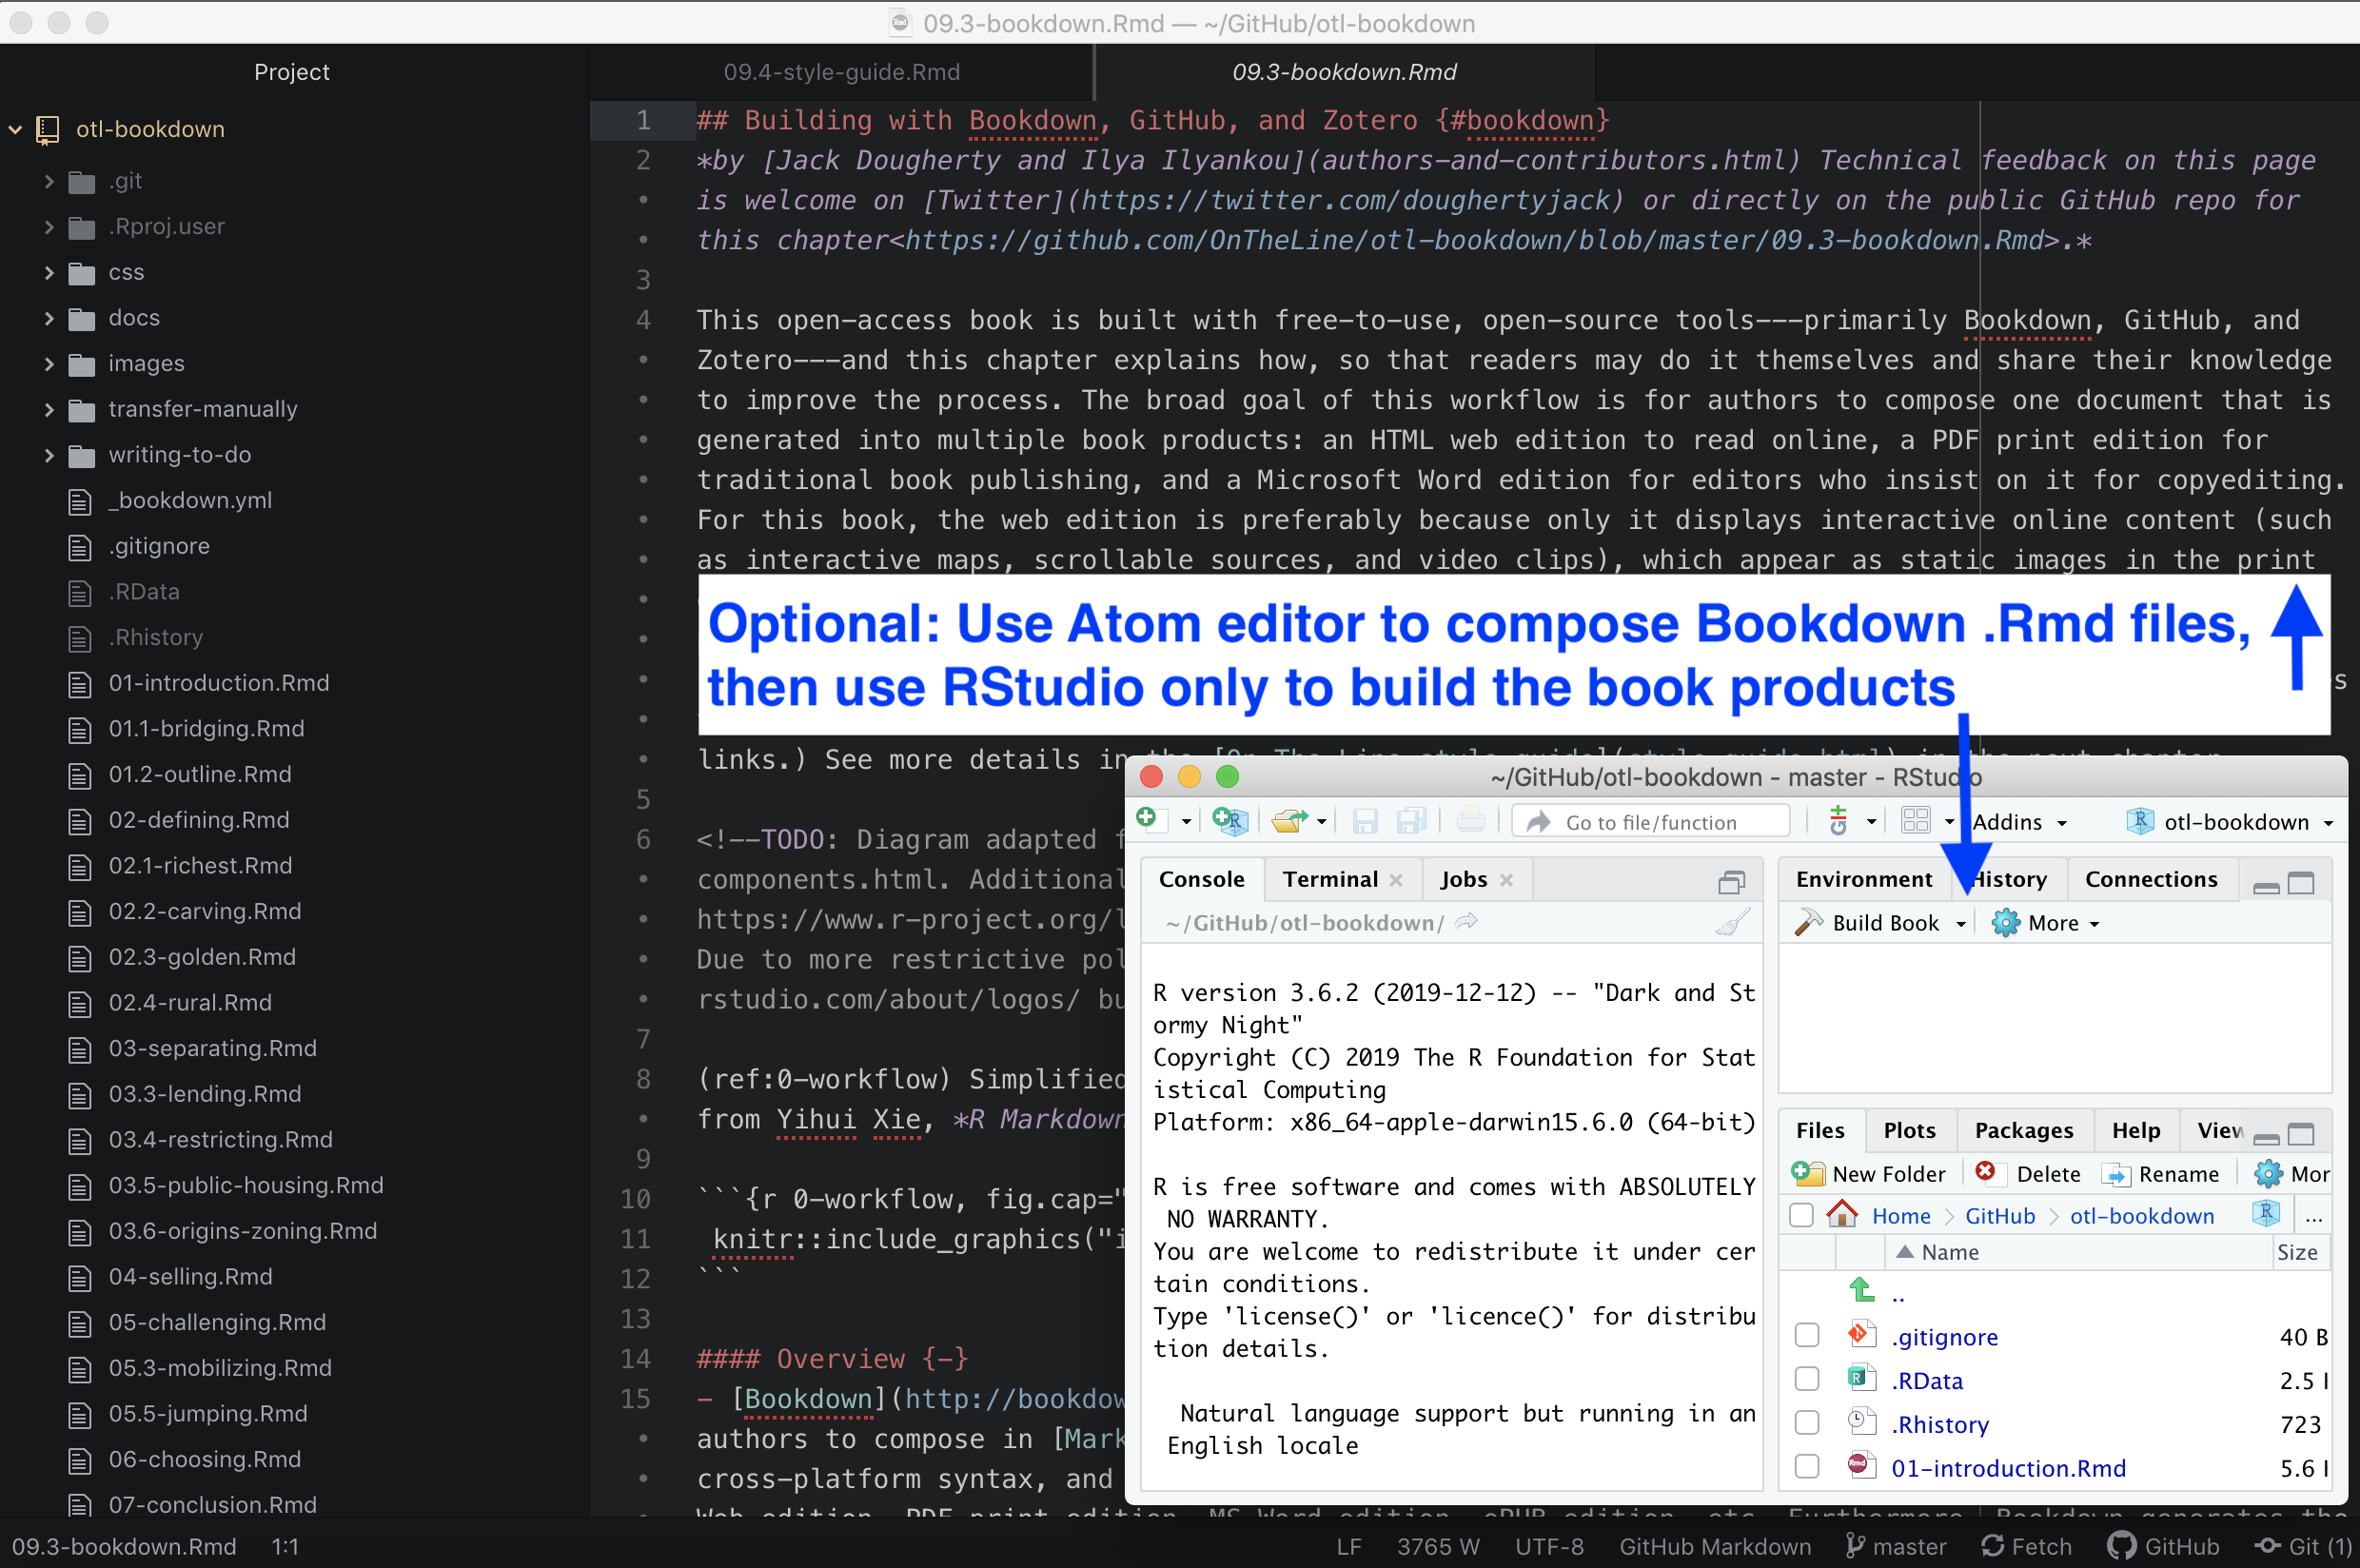 Variation on the workflow above: Compose the text in your preferred editor (such as Atom), and use RStudio only to build the book products.